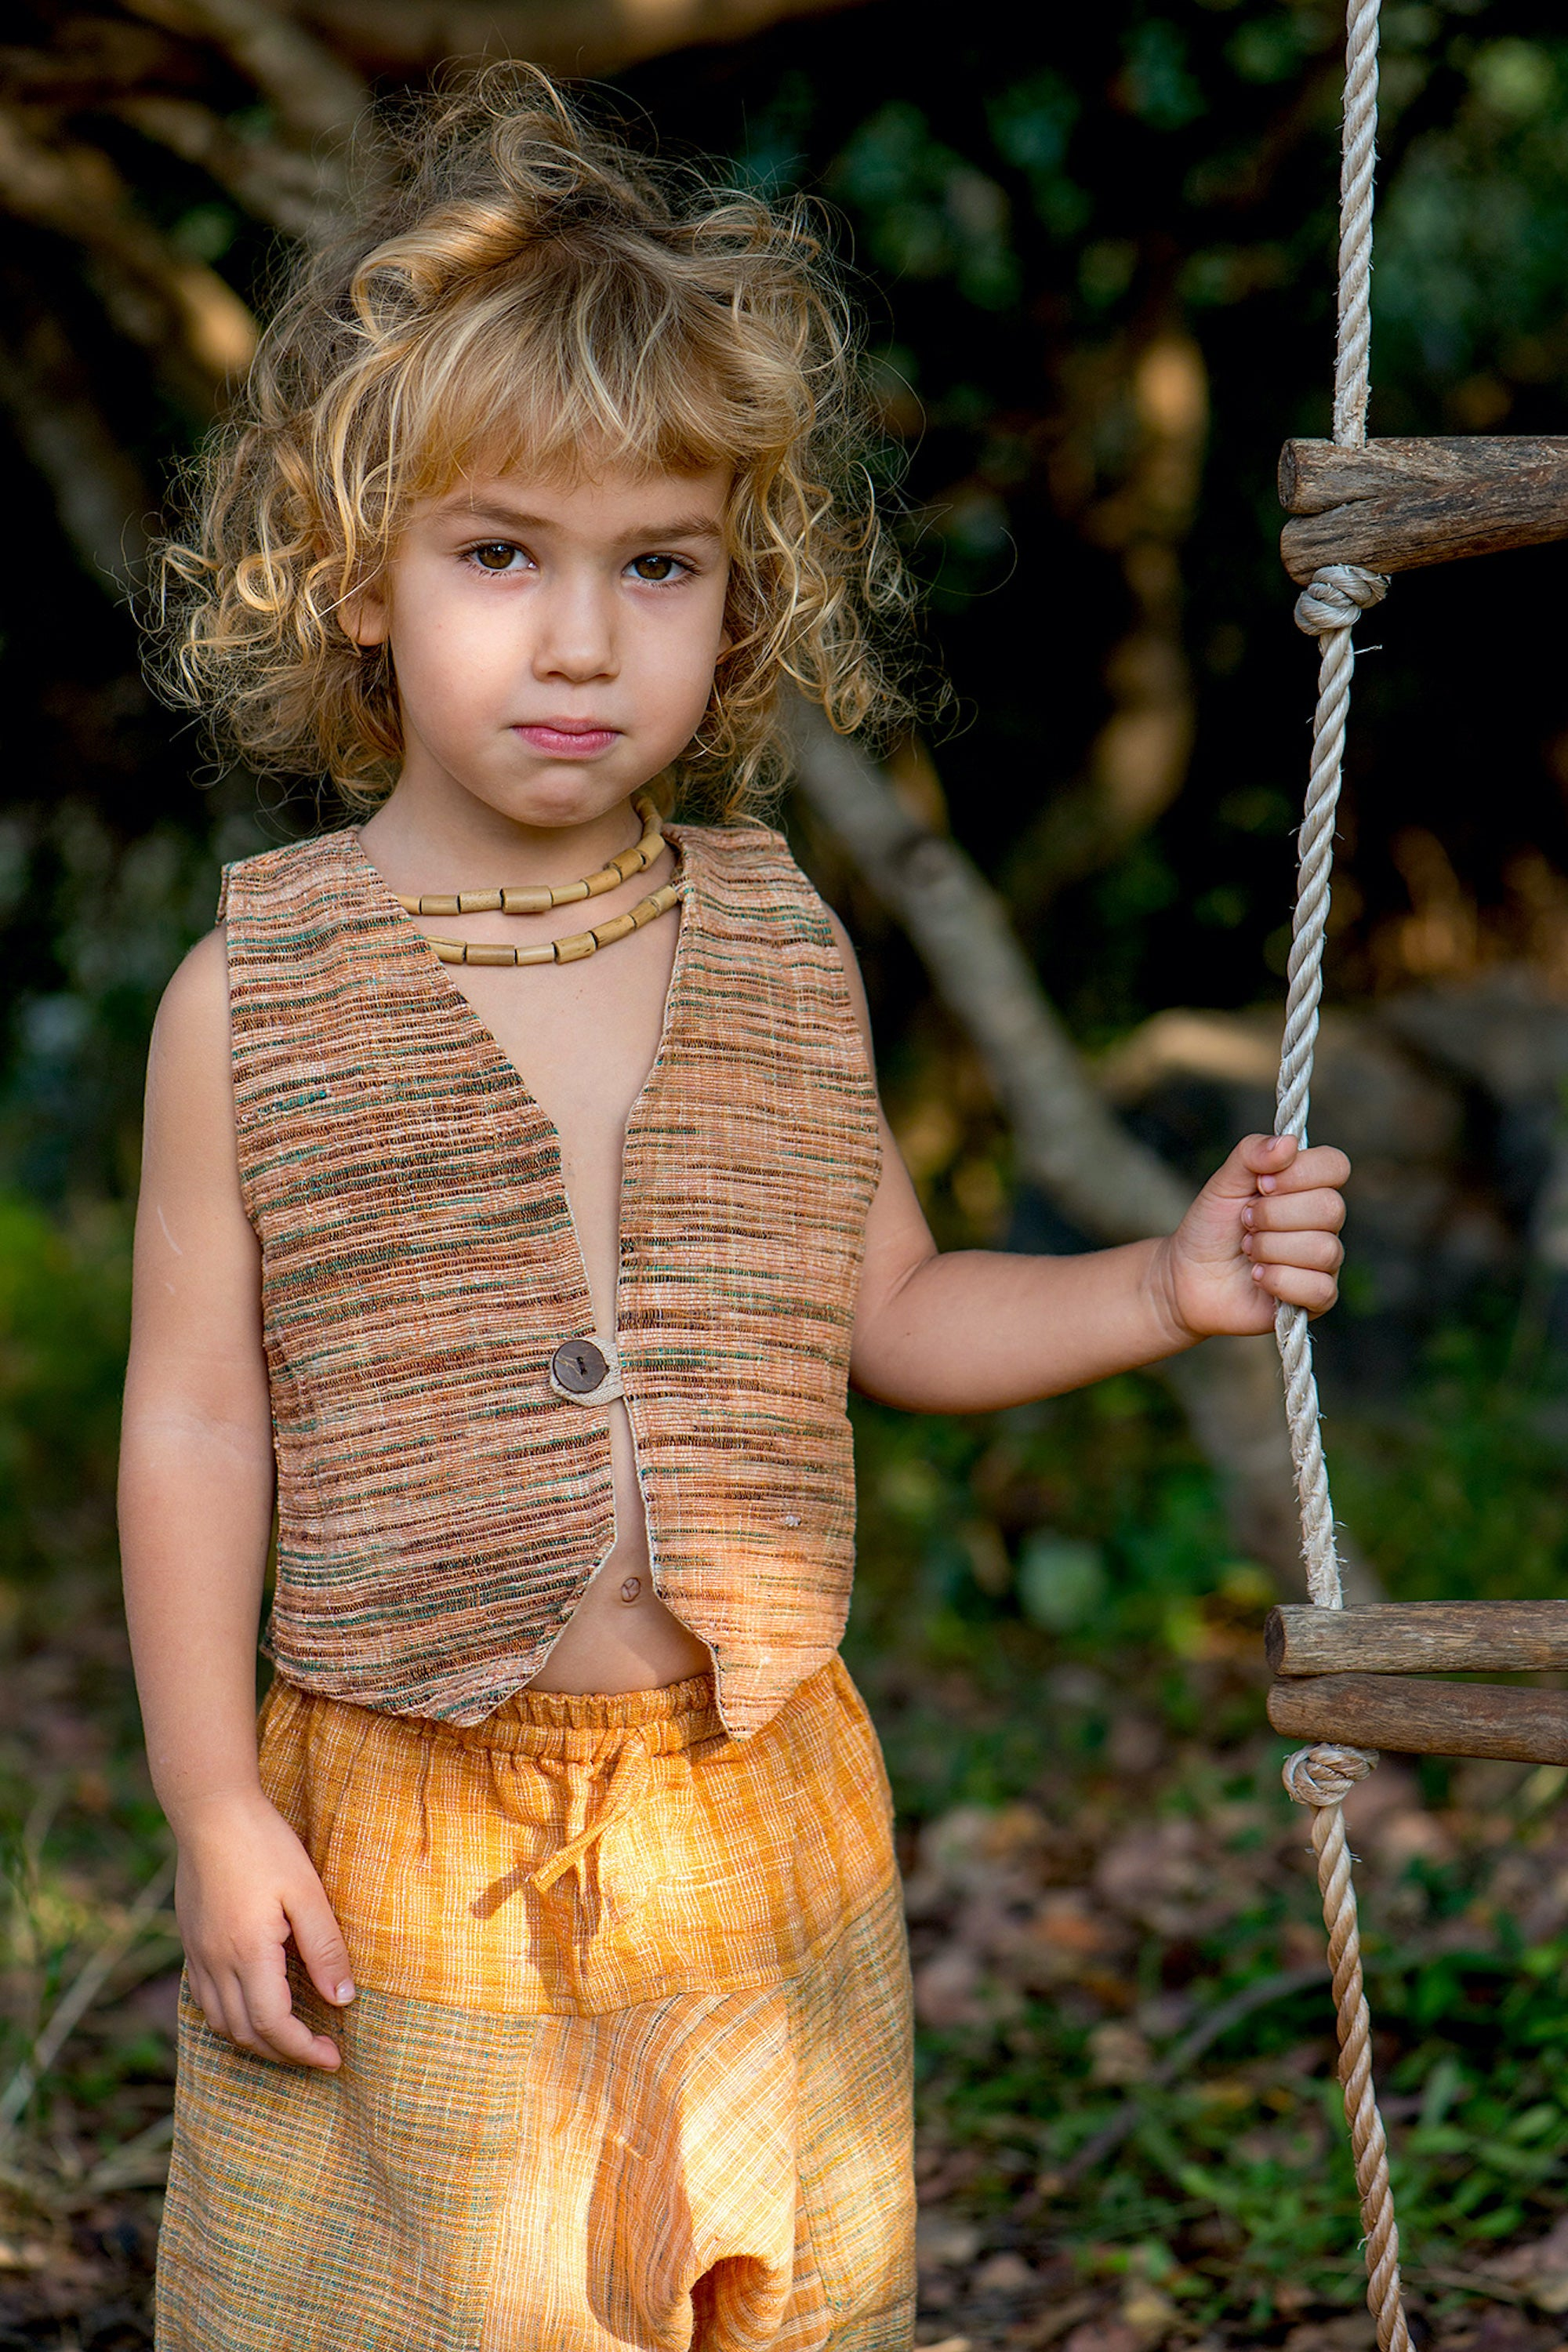 Children Vest • Handwoven Khadi Cotton • Earth Children • Handwoven Vest • Earthy Clothing For Kids